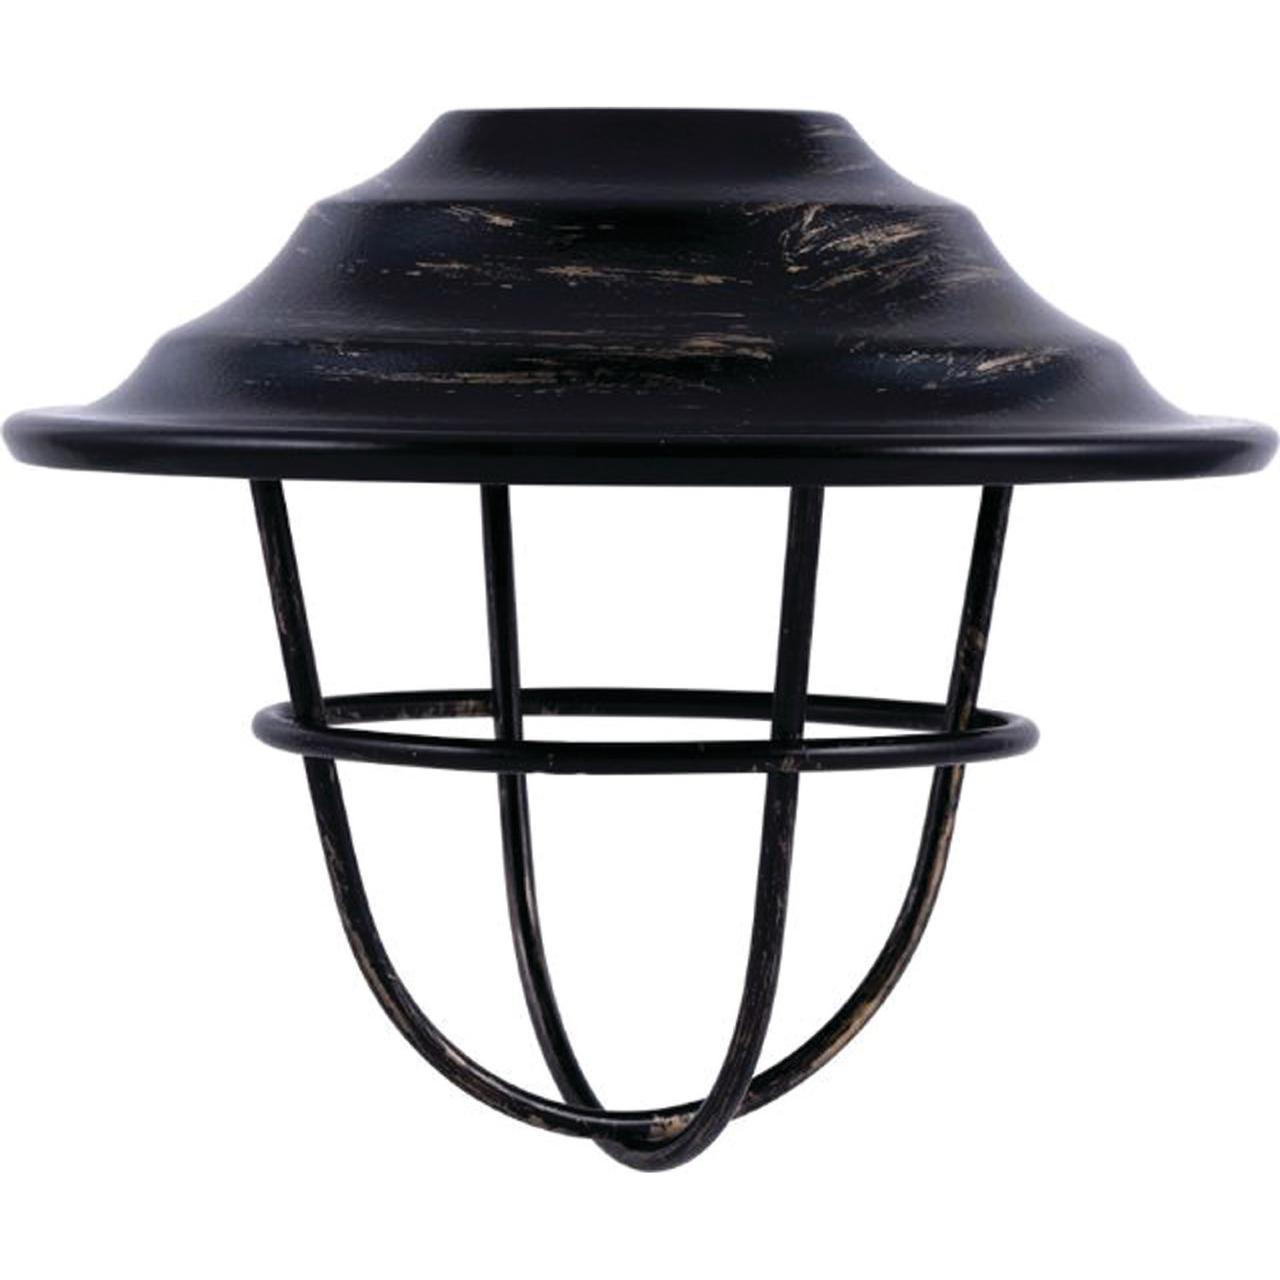 Enbrighten Accessory Lens Shades for Enbrighten Café String Lights, 6 Oil-Rubbed Bronze Cage Shades, 35877